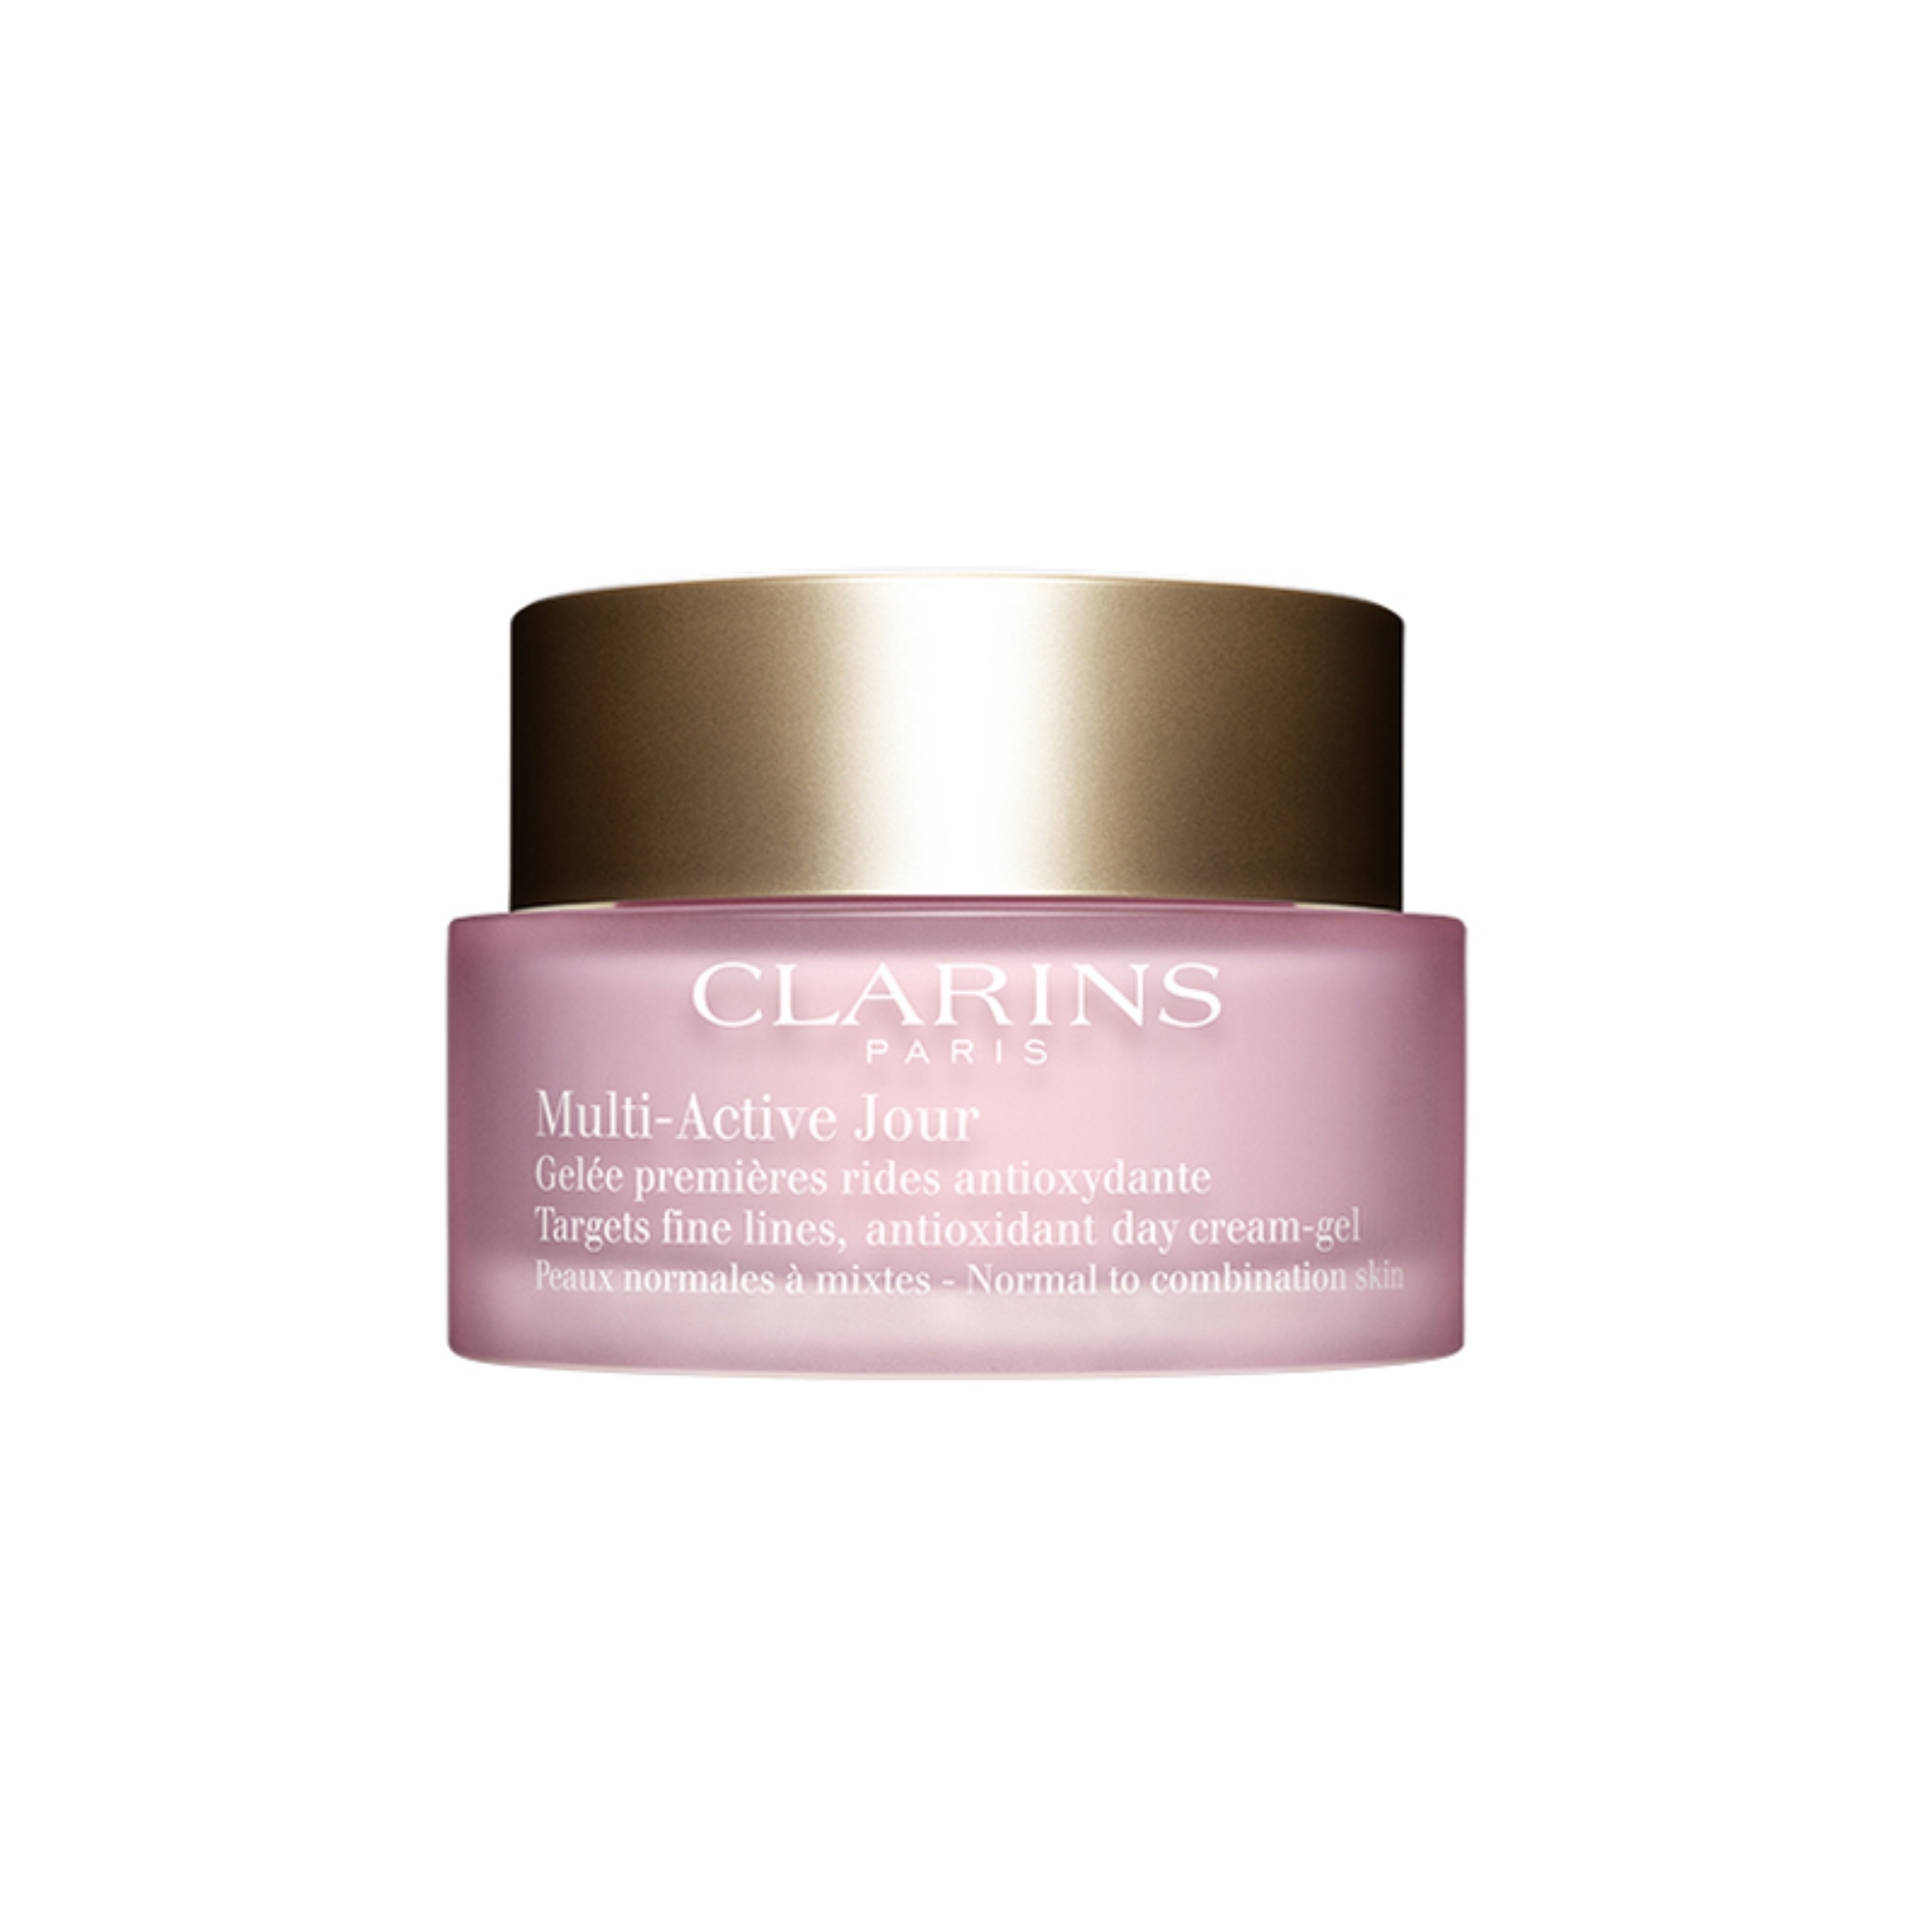 Multi-Active Jour Cream-Gel for Normal to Combination Skin